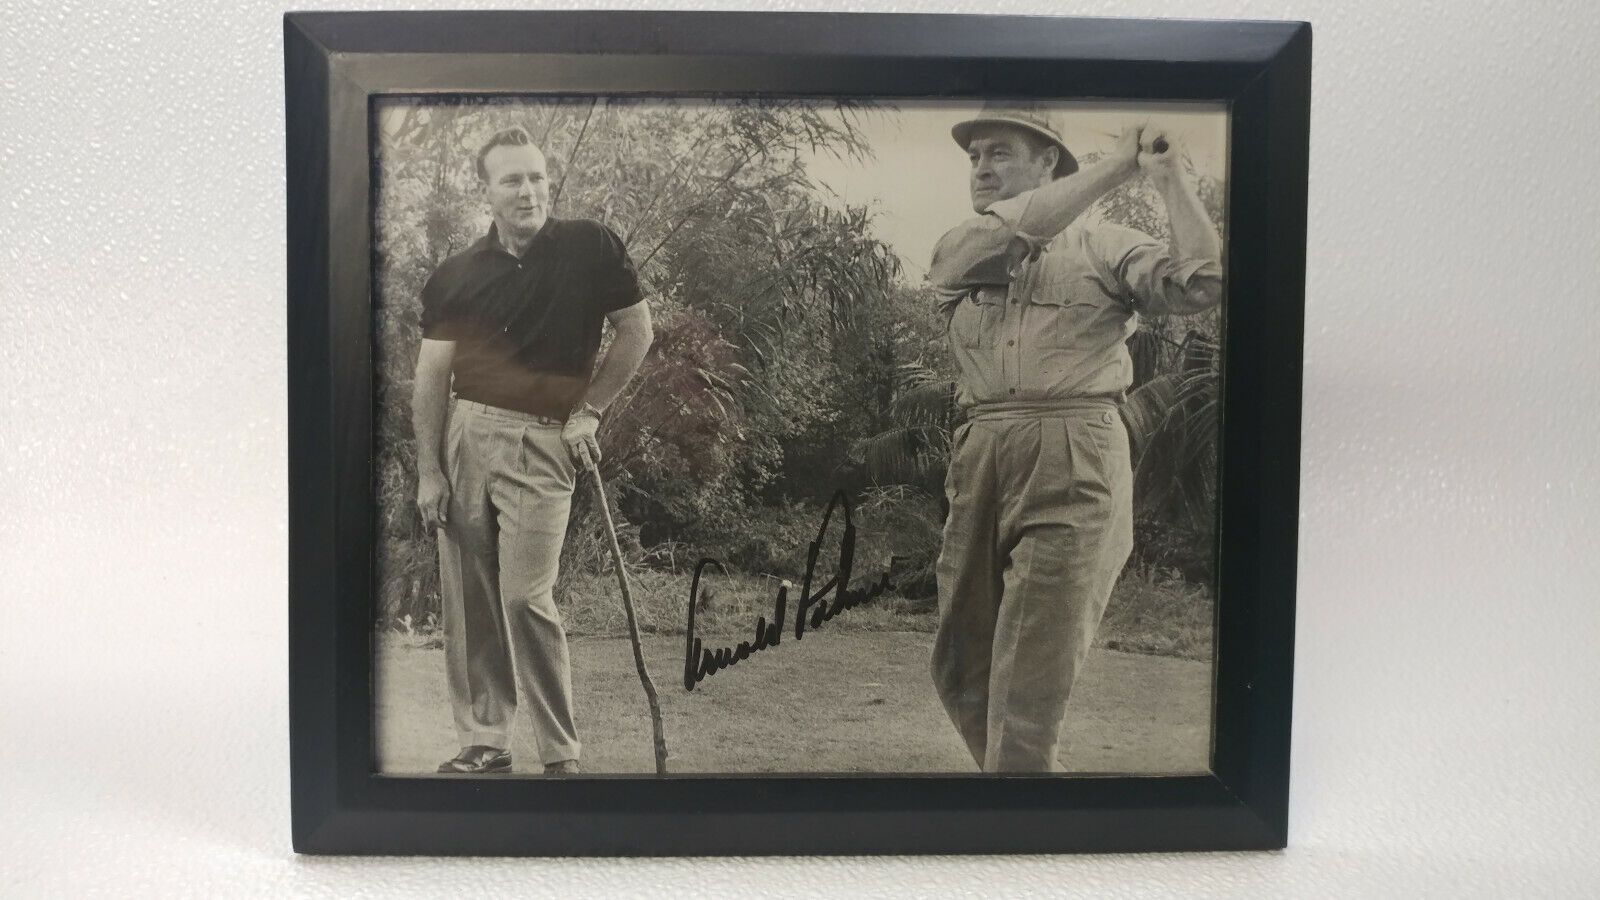 Arnold Palmer And Bob Hope & Spanky McFarland Autographed Prints 8x10 Без бренда